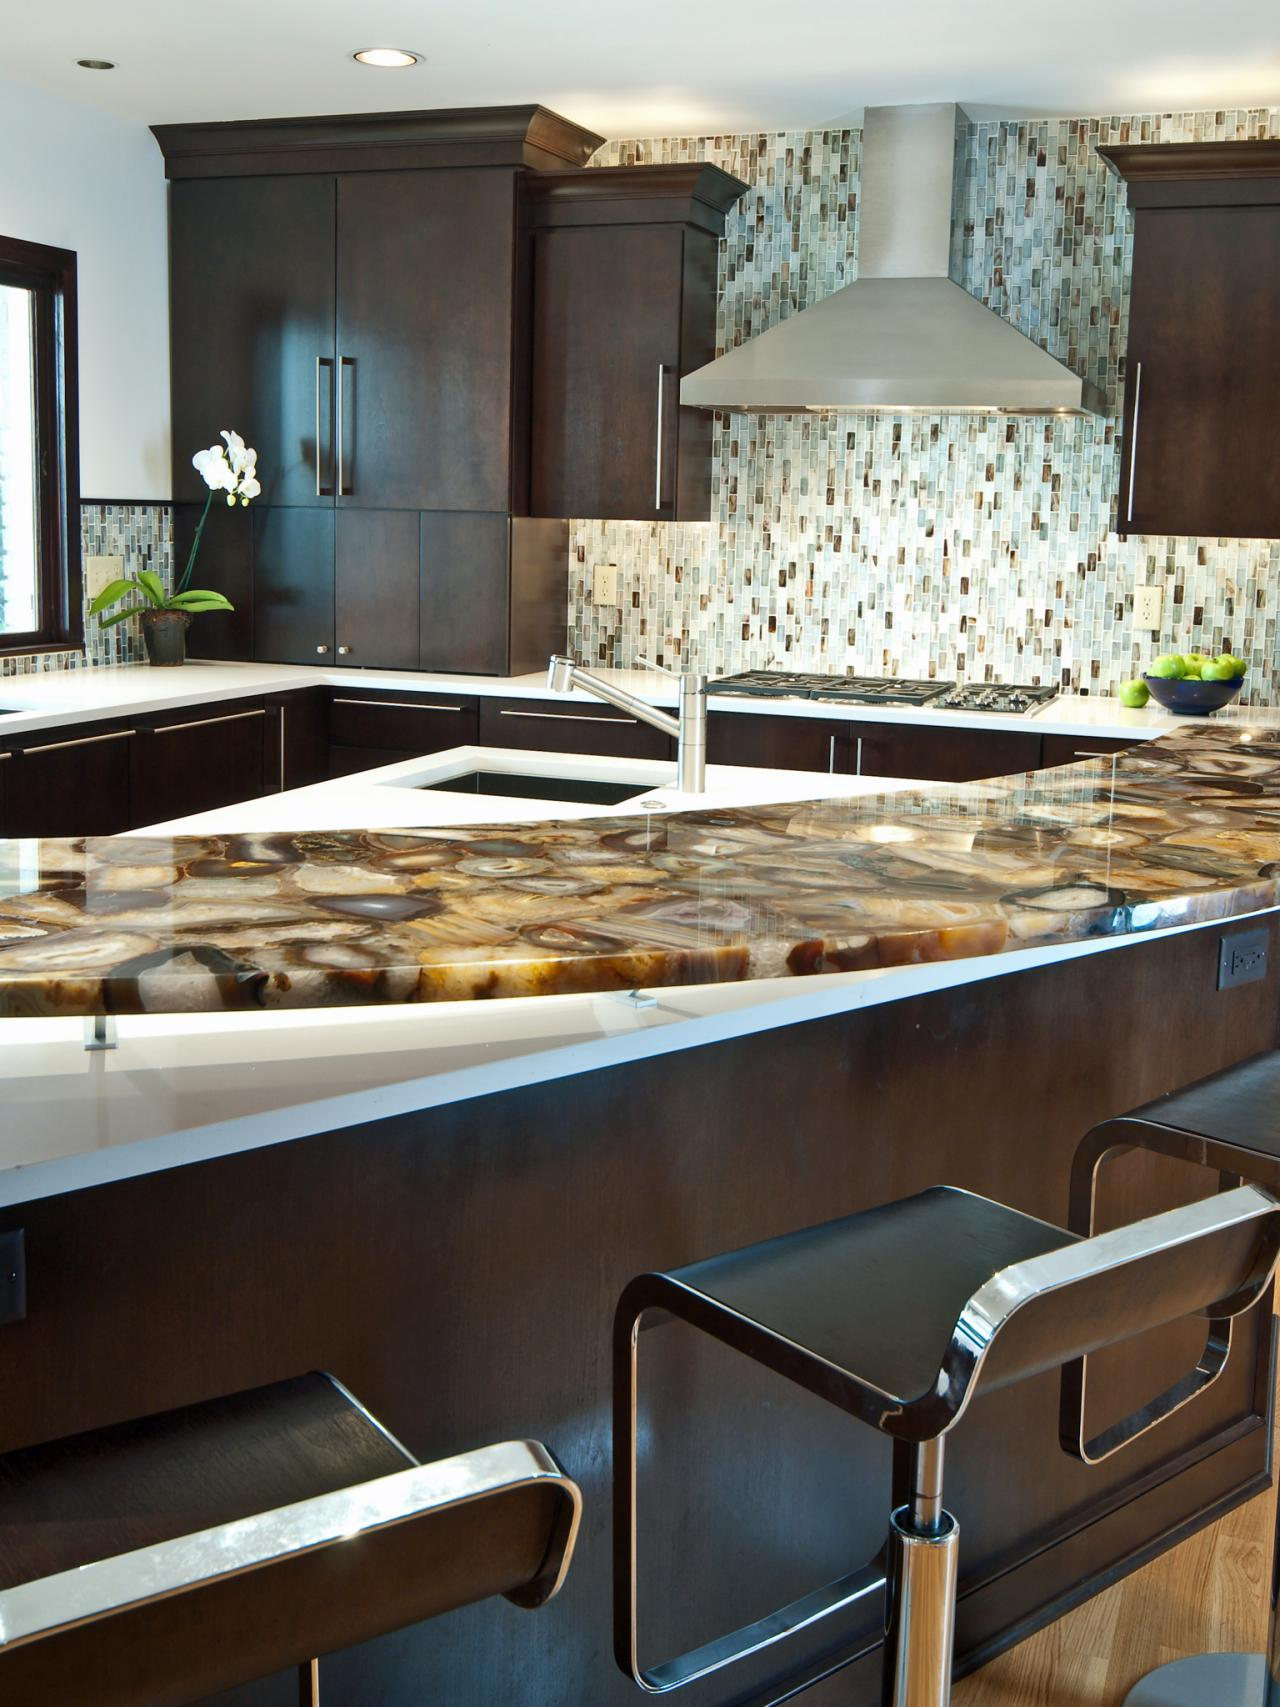 10 High-End Kitchen Countertop Choices Kitchen Ideas & Design with ...